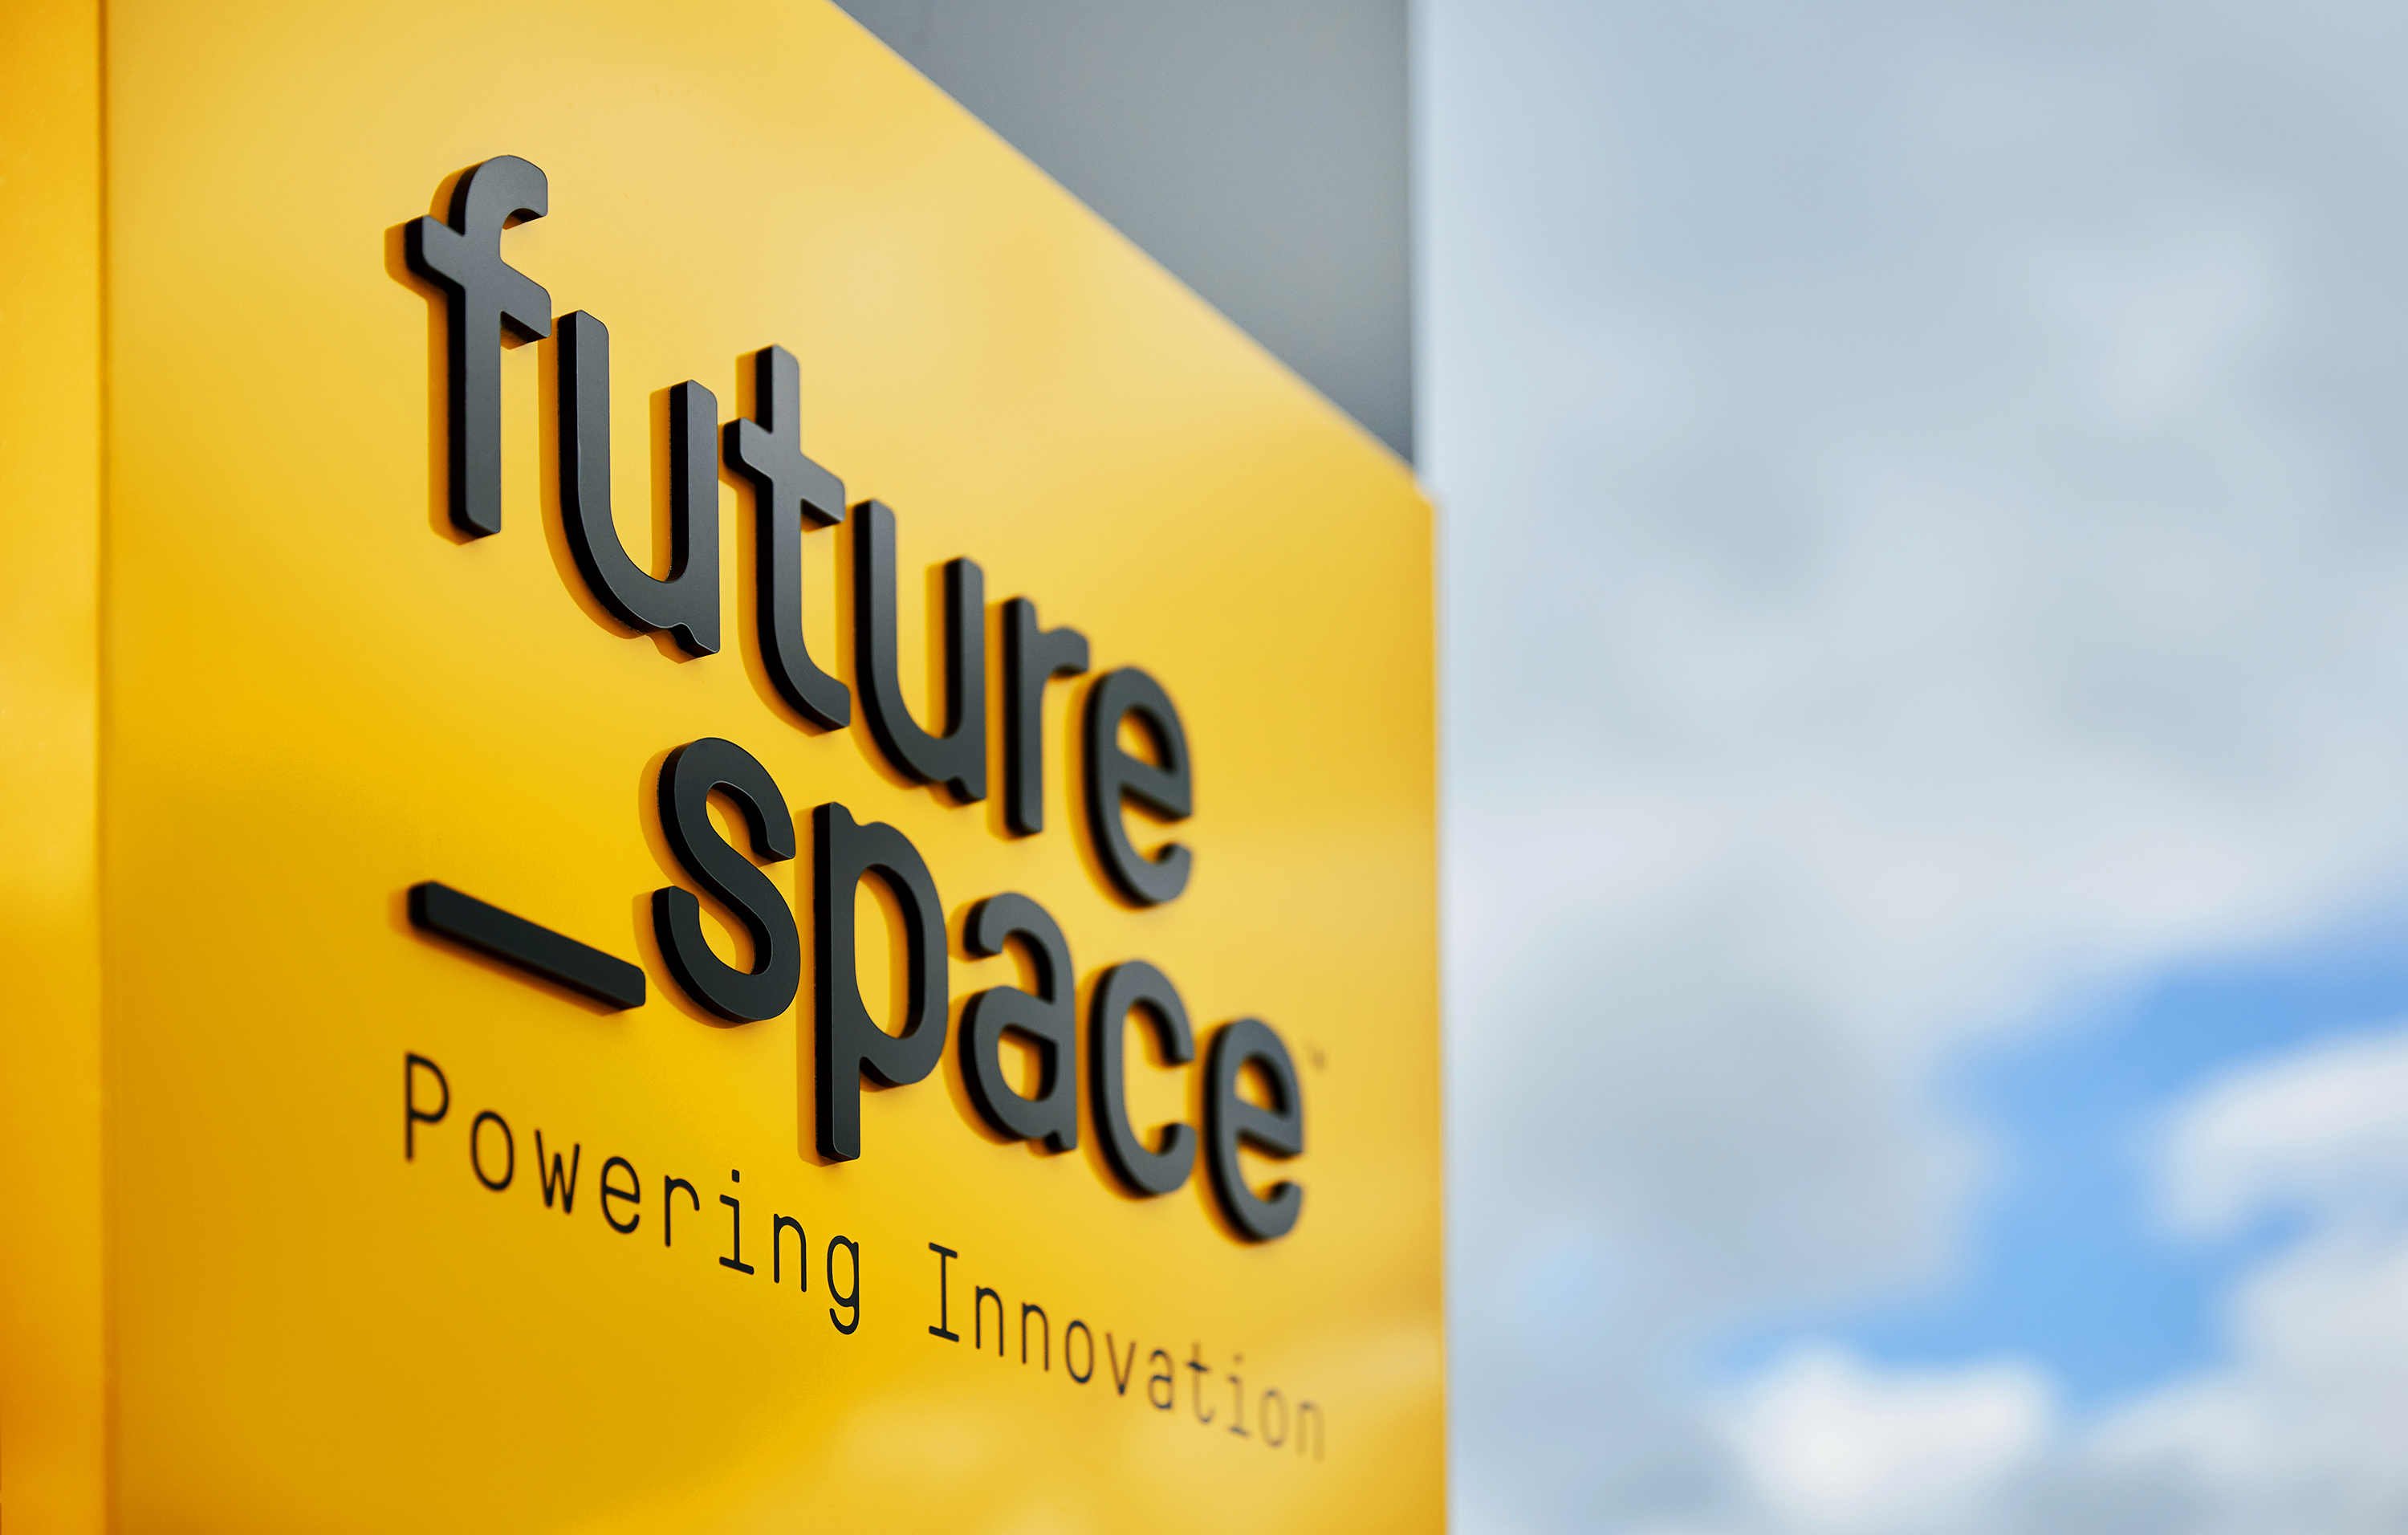 Exterior signage of future space branding by Fiasco Design